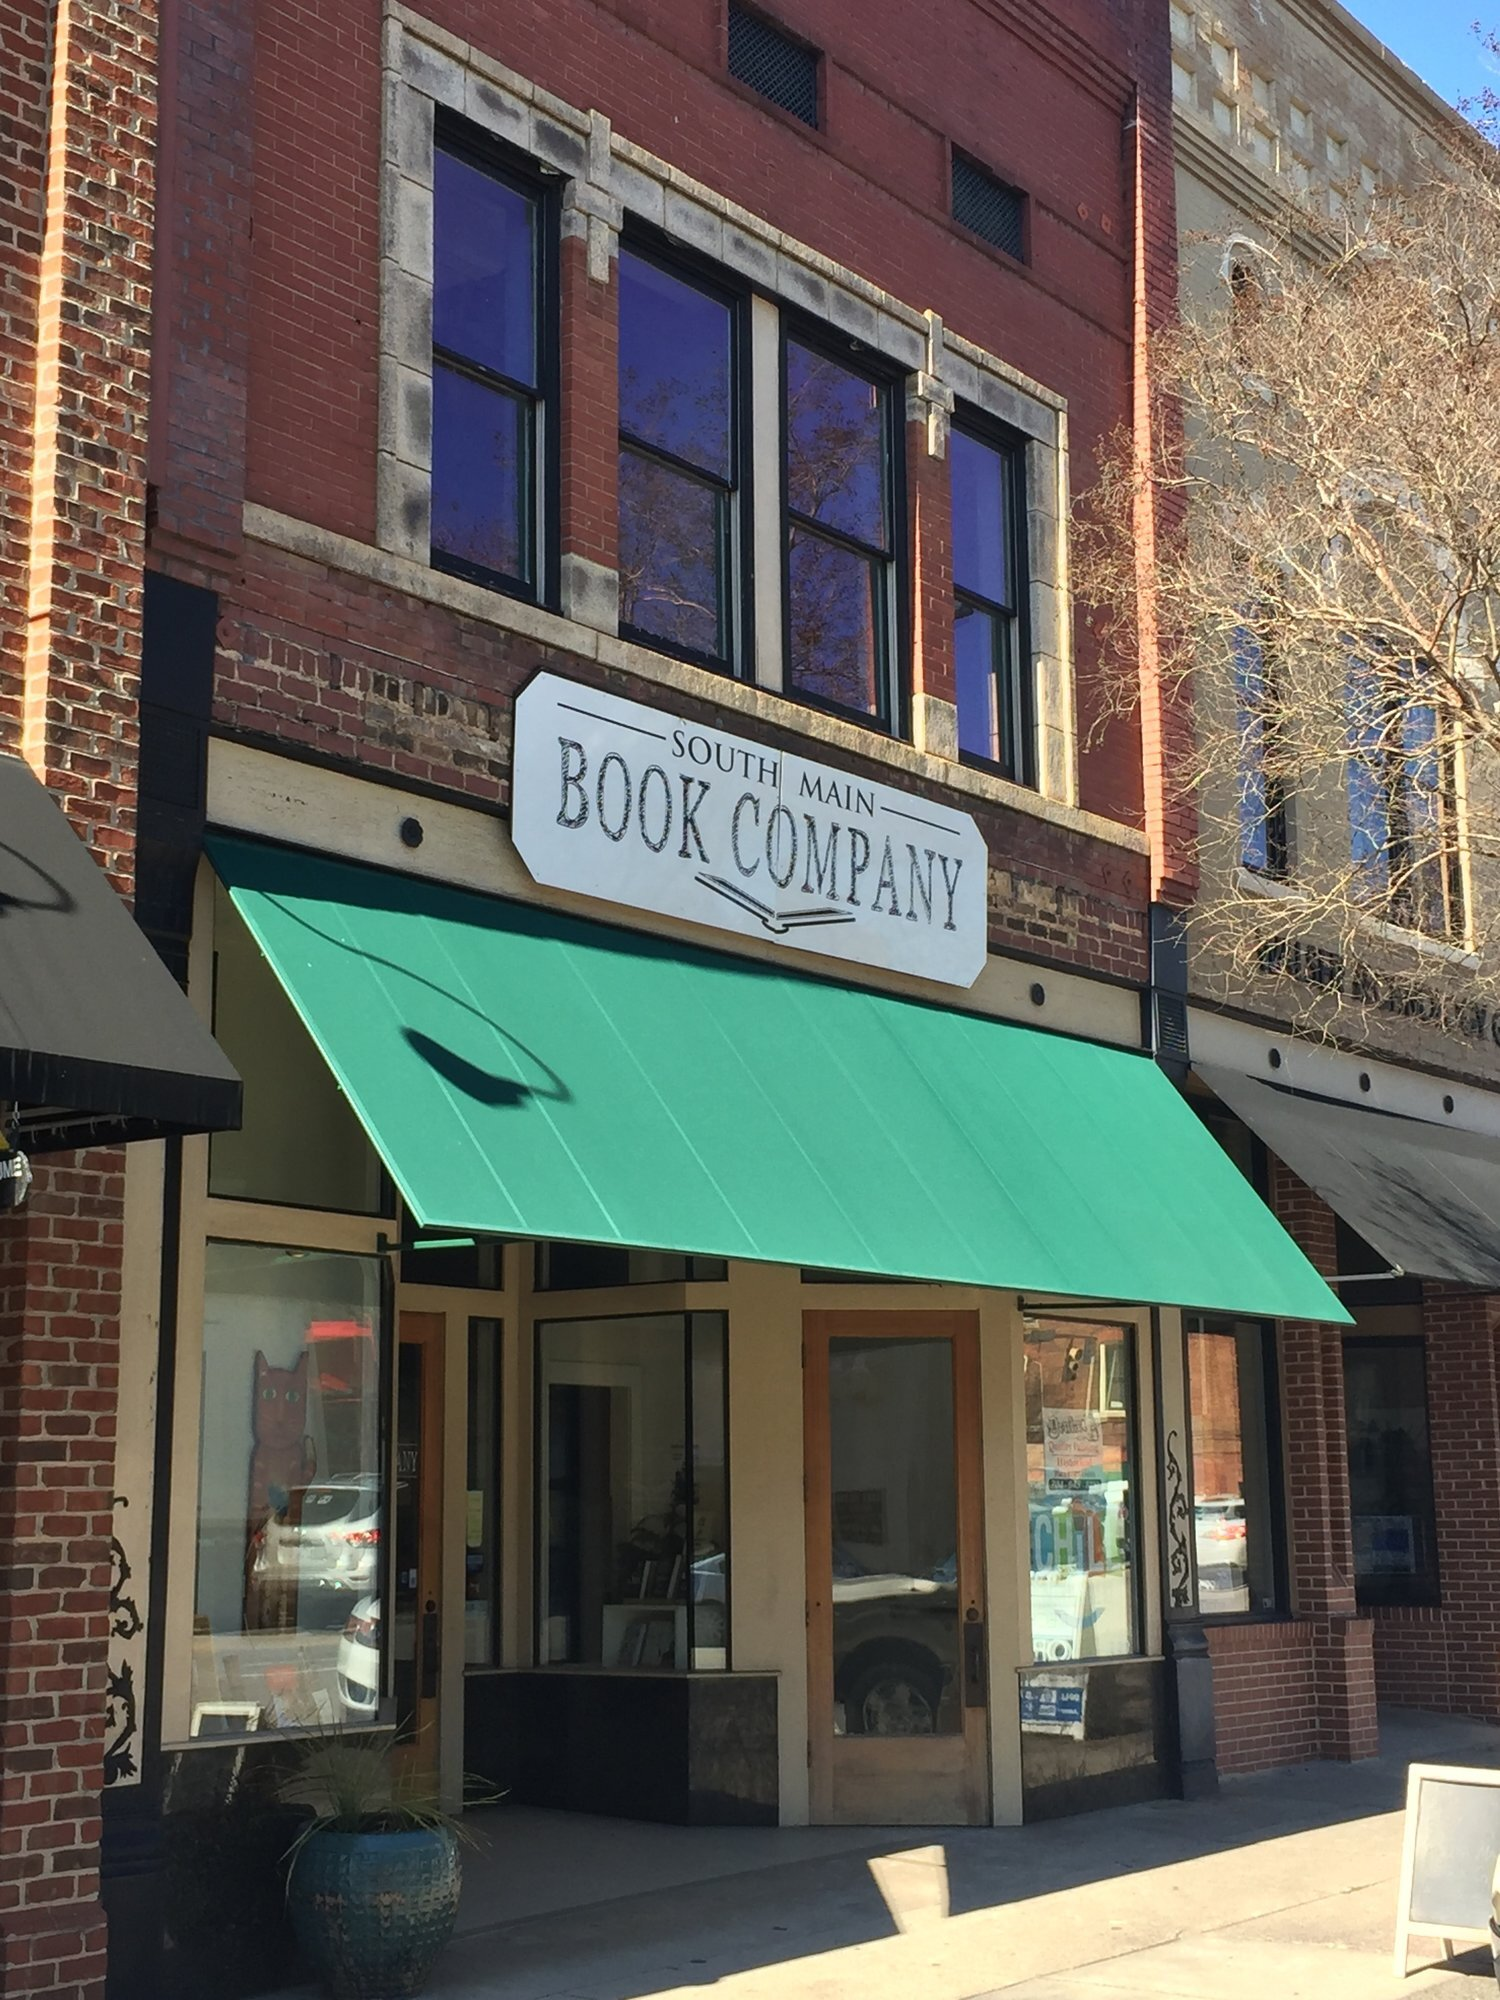 South Main Book Company - Salisbury, NC